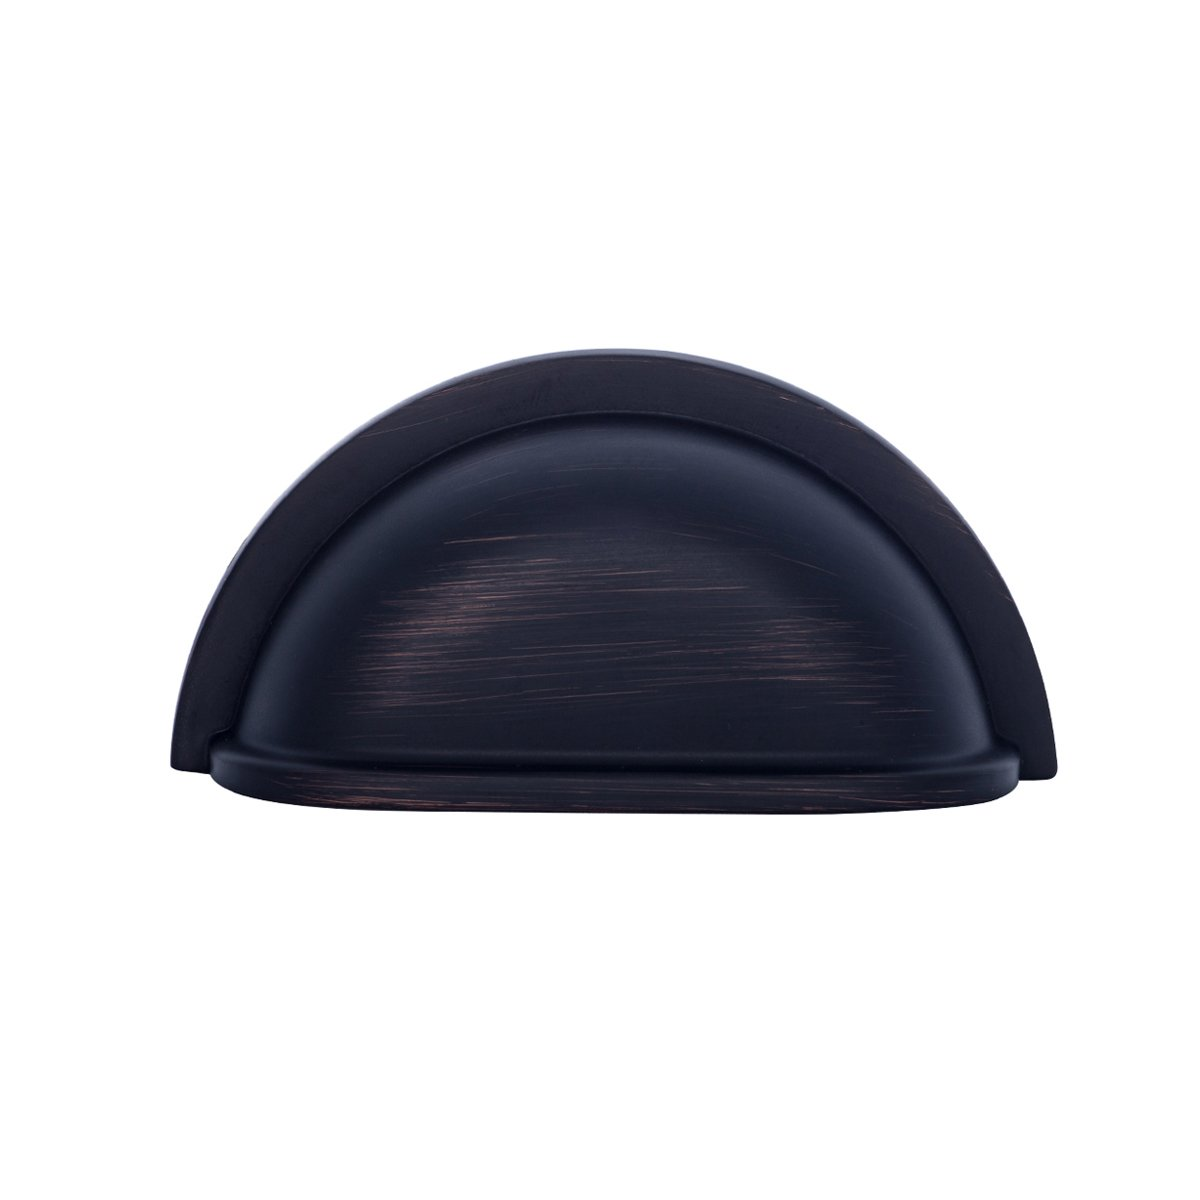 3.43 Overall Length Flat Black -10 Pack 3 Hole Center Basics Traditional Bin Cup Drawer Pull